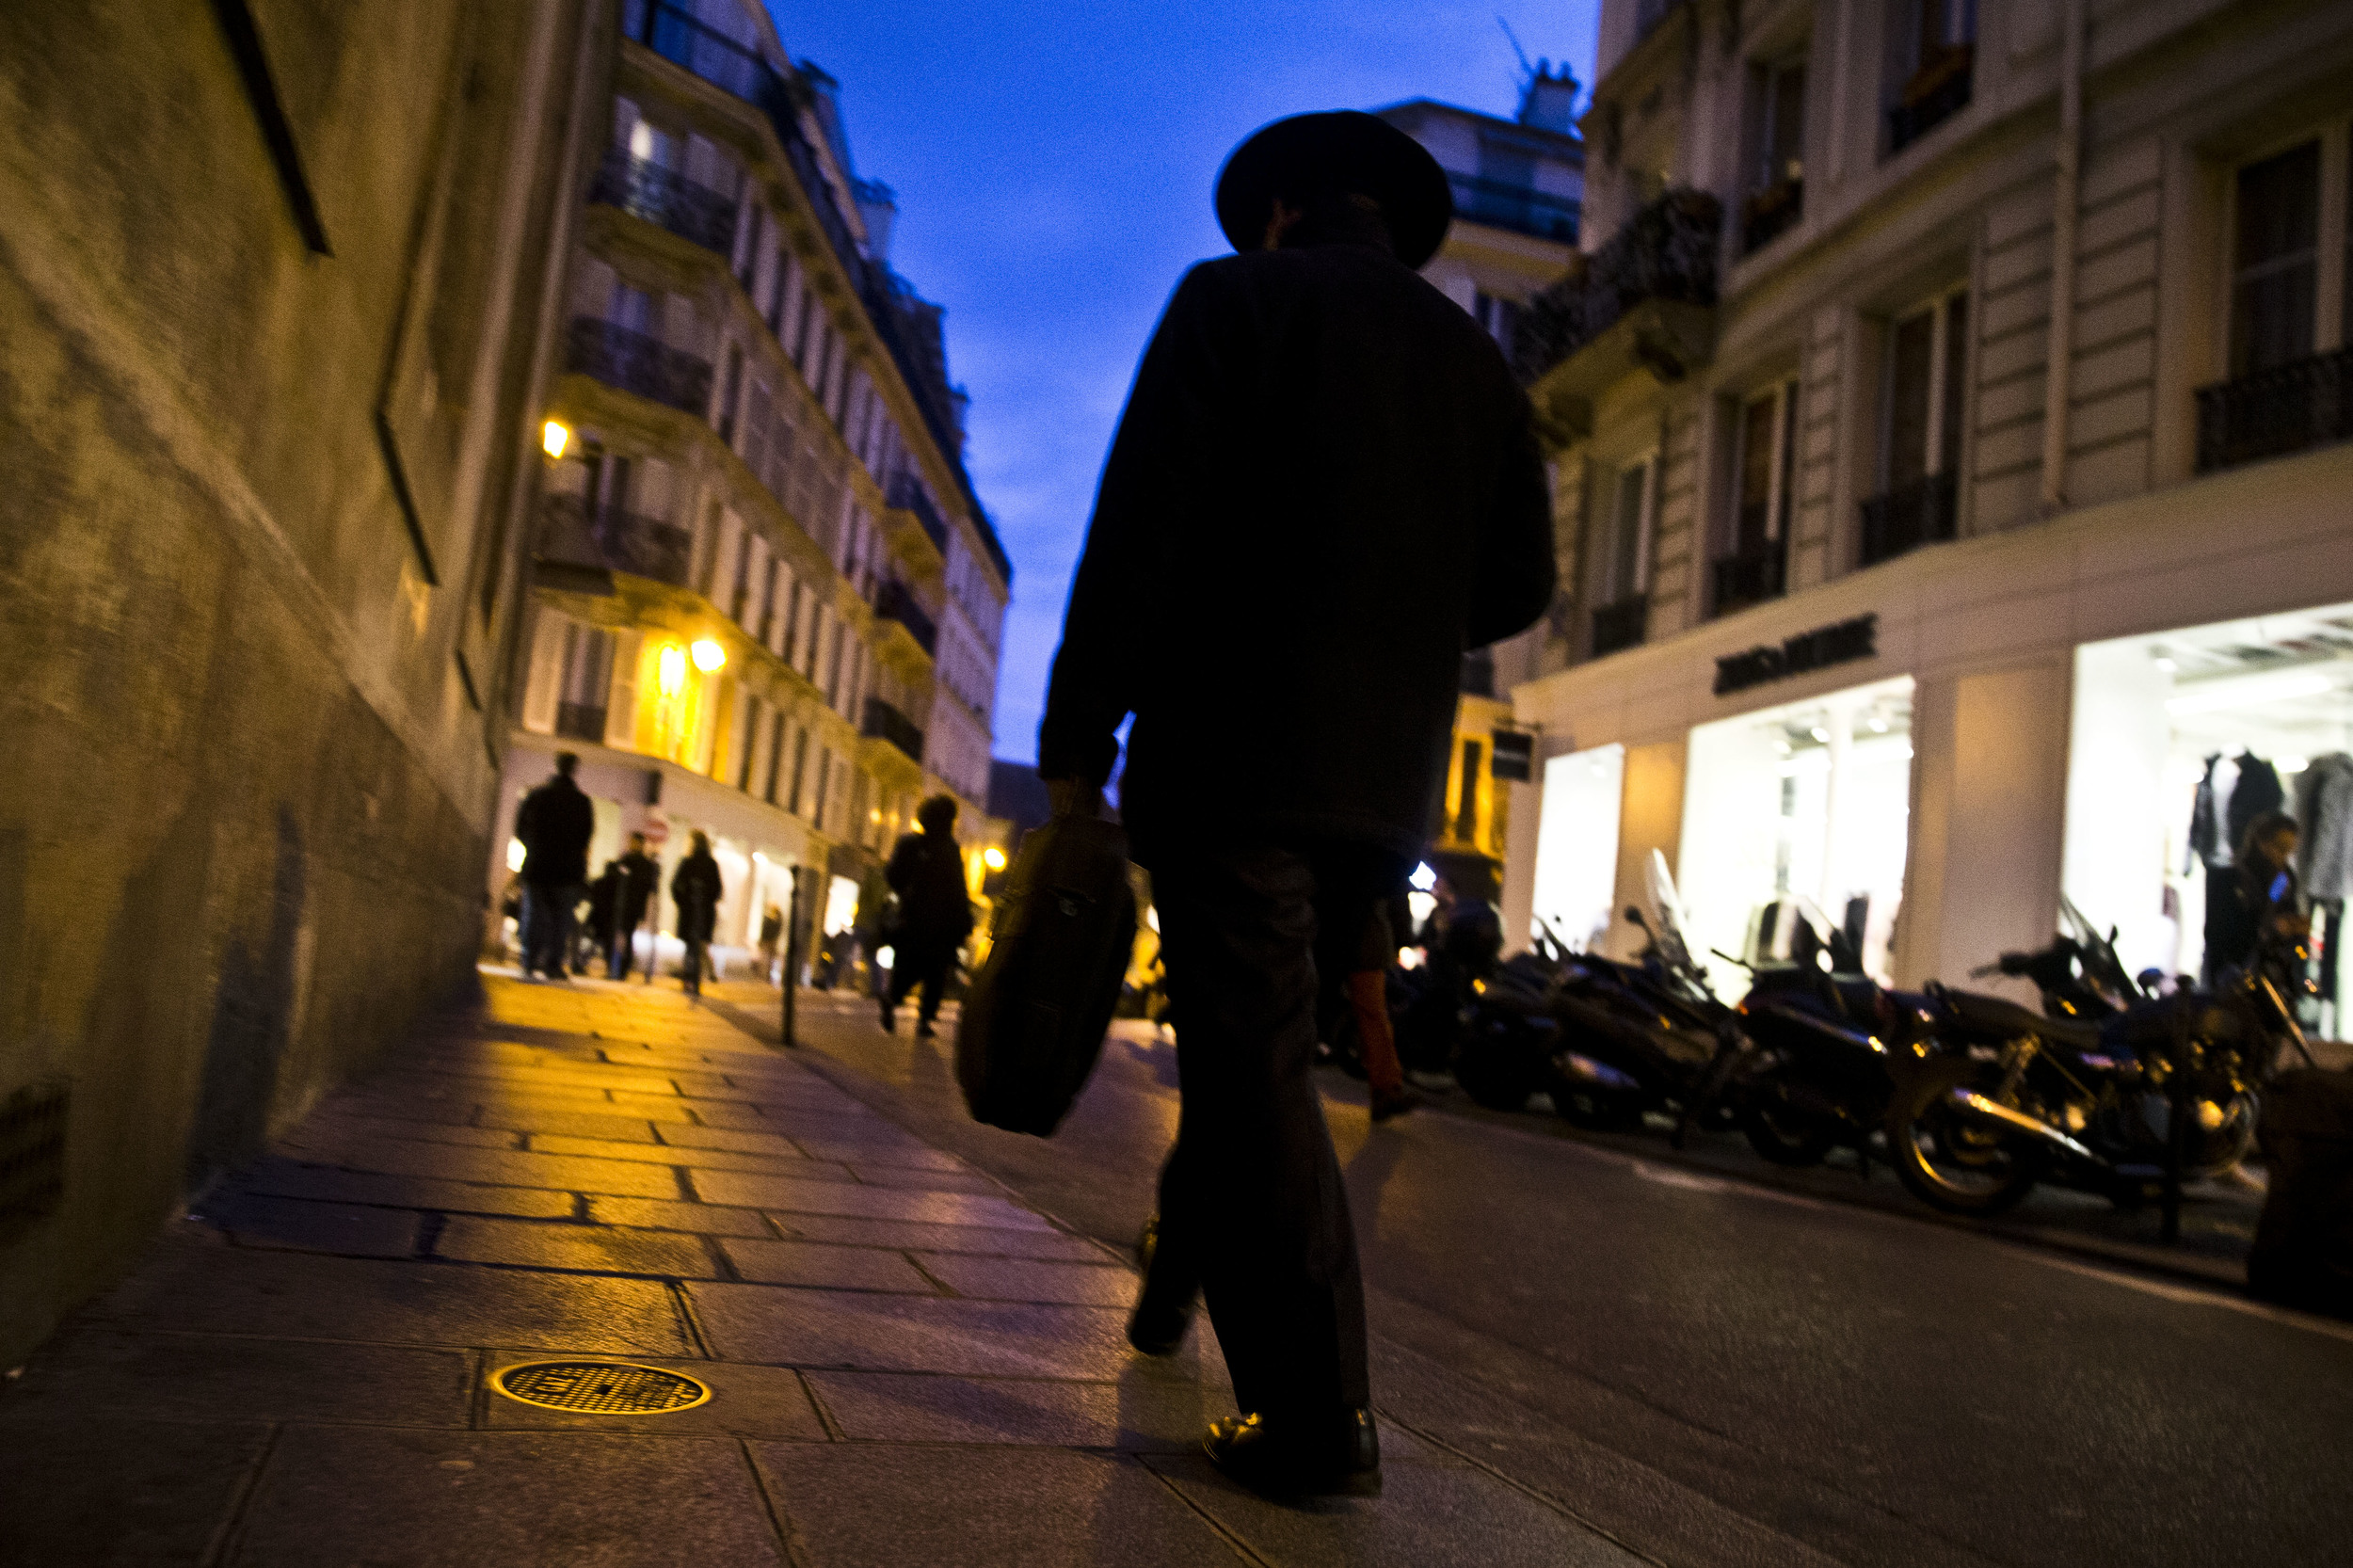 An orthodox jew walks in Paris district Marais that was taken under guard after Charlie Hebdo shooting. January 12, 2015